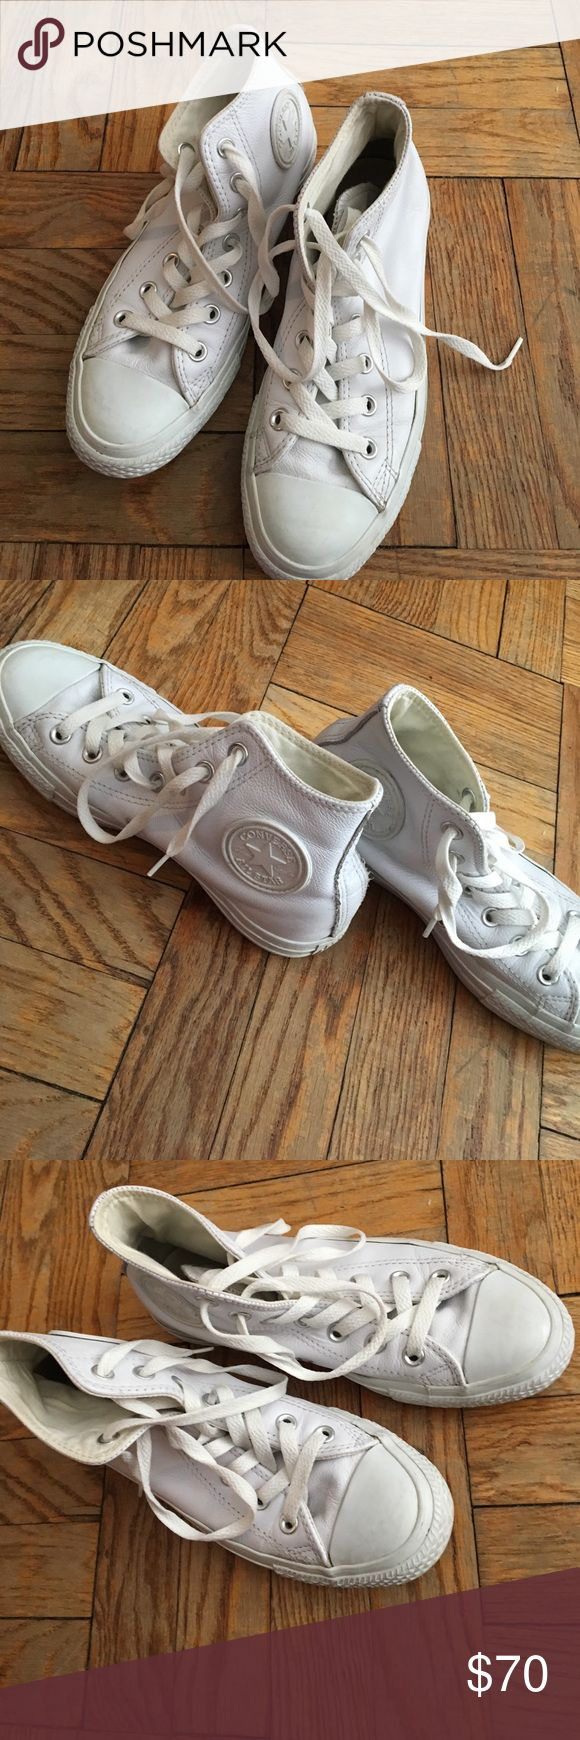 All Bright White Leather Converse Chuck Taylors high top, look new- worn maybe 10 times. Men's 5/Women's 7 Converse Shoes Sneakers